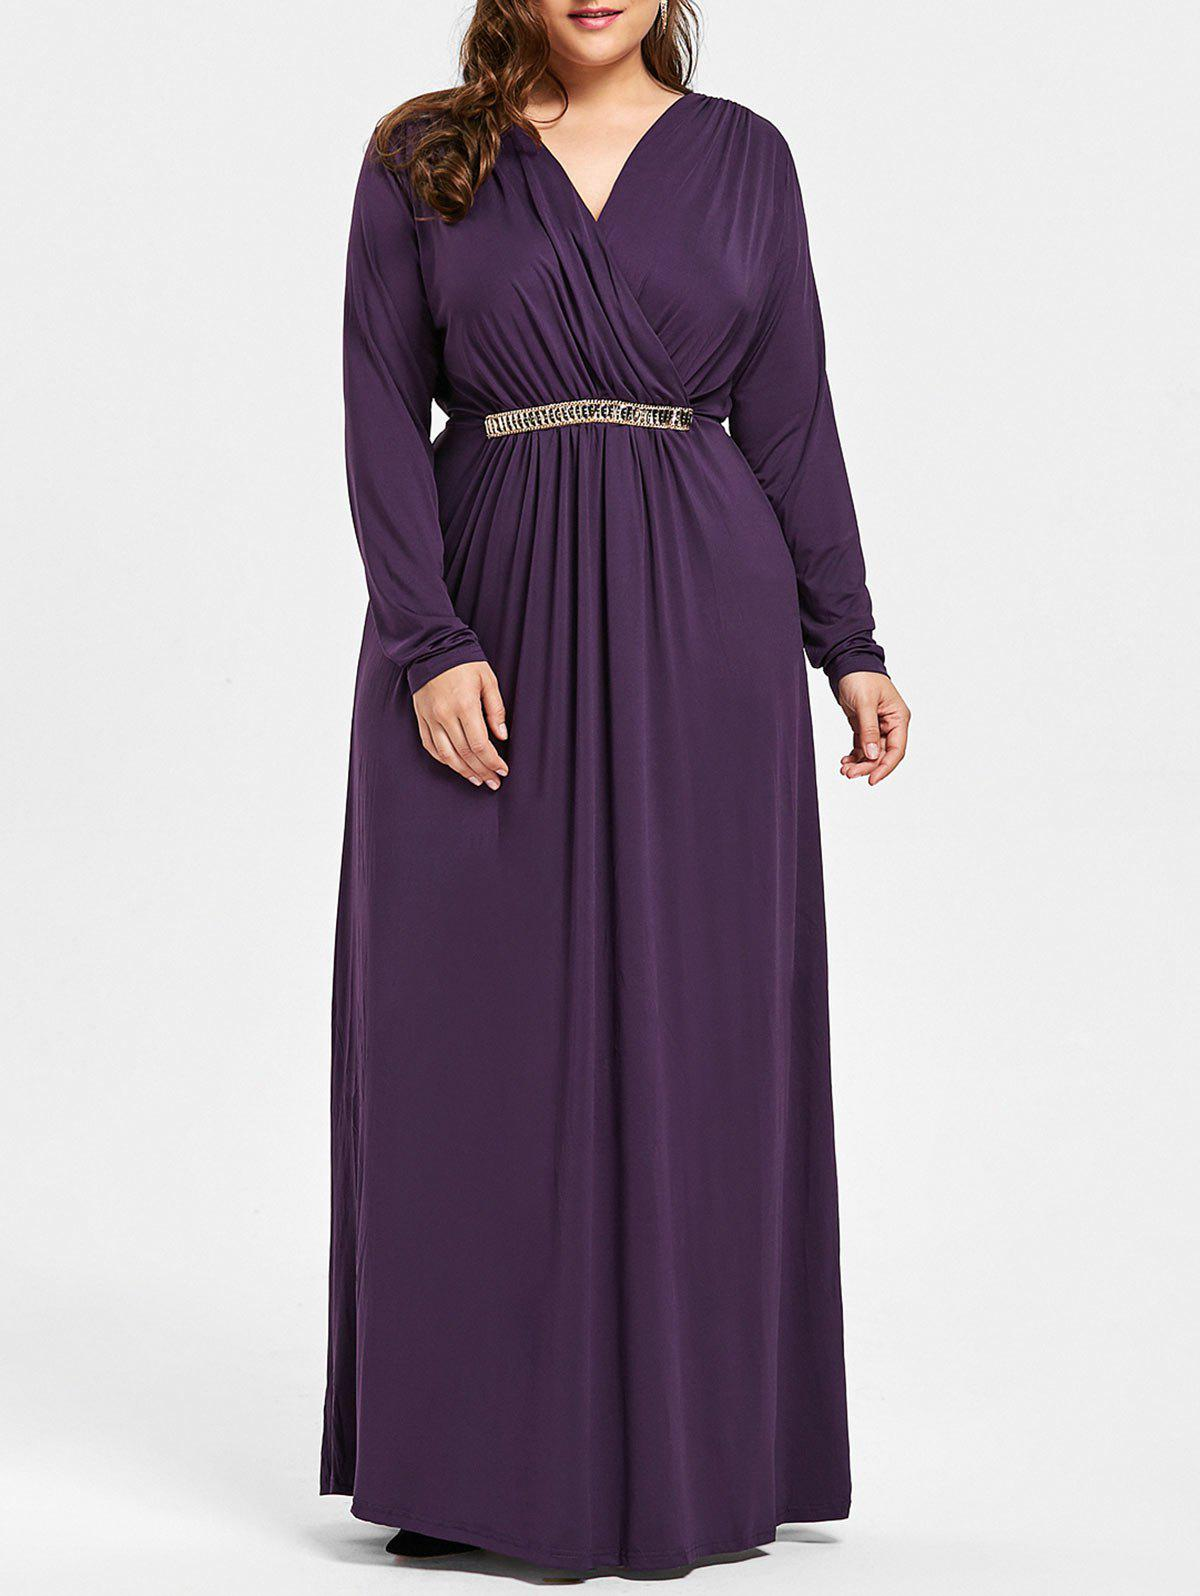 Plus Size Surplice Rhinestone Embellished Maxi Dress - DEEP PURPLE XL